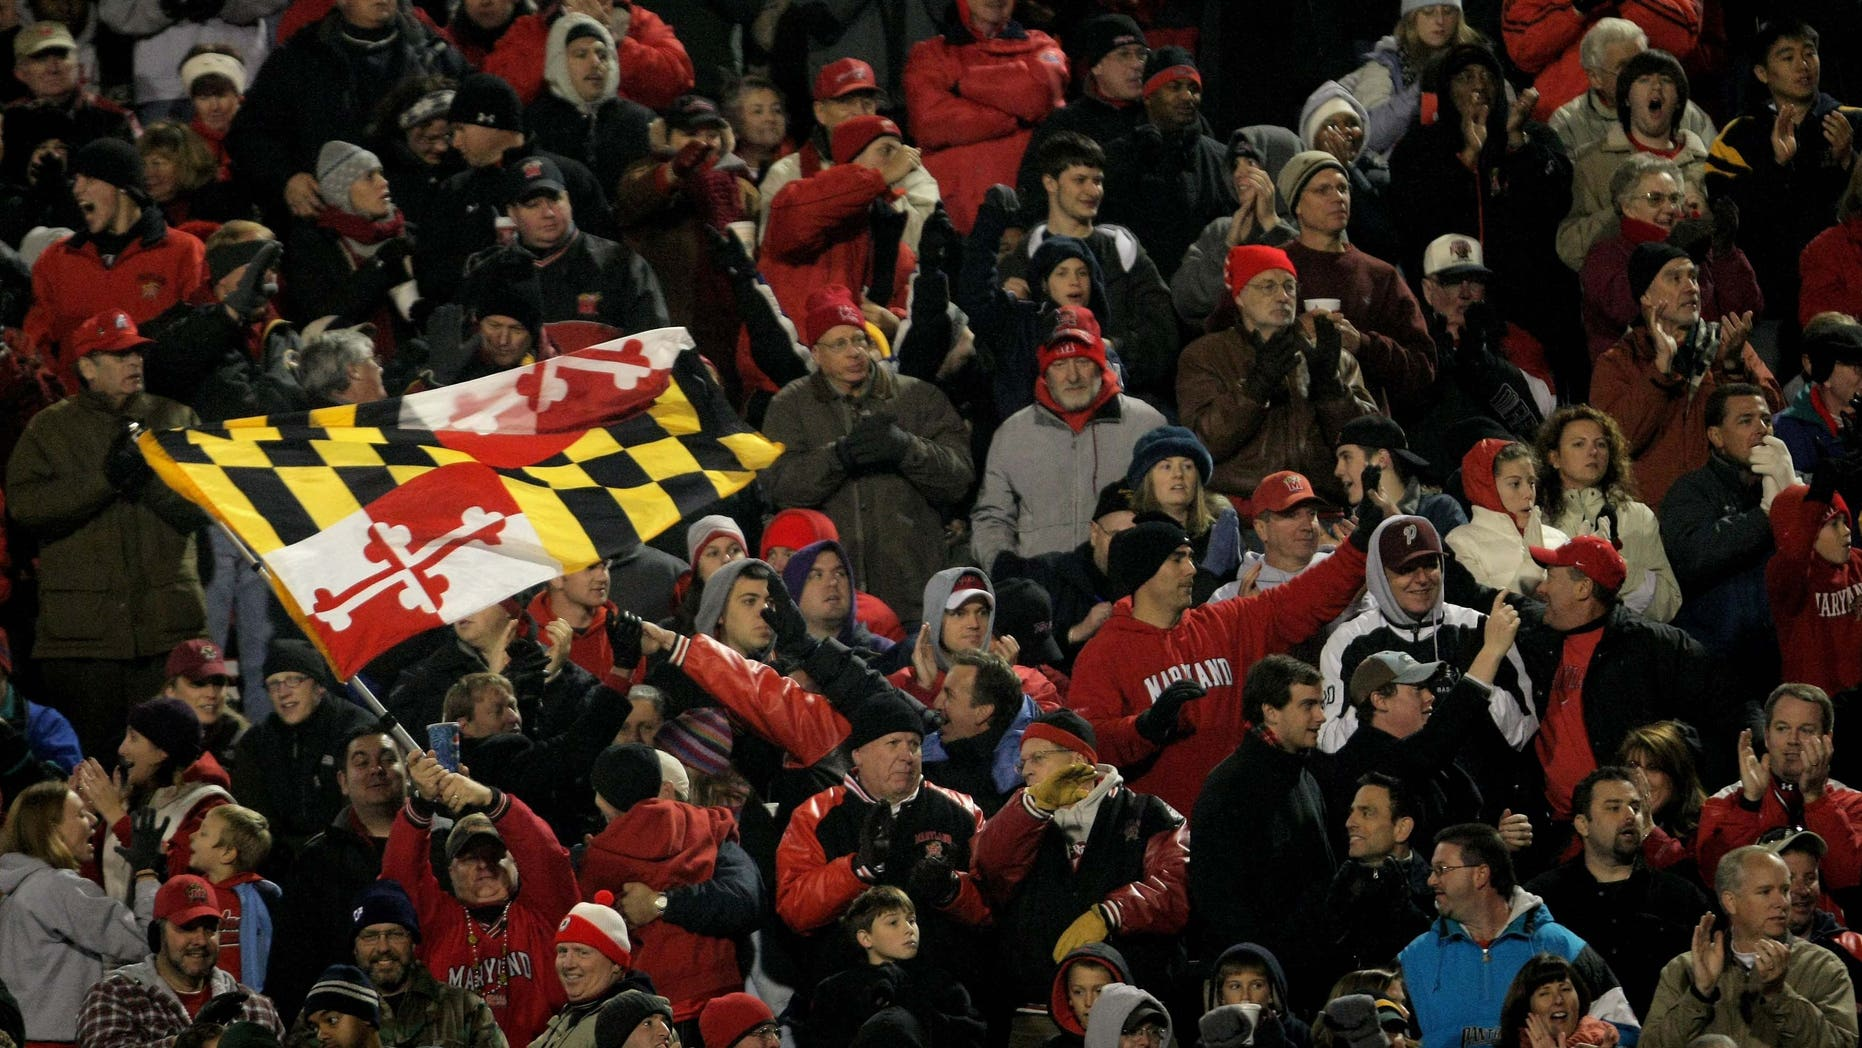 COLLEGE PARK, MD - NOVEMBER 10:  A Maryland fan waves the state flag as the Boston College Eagles square off against the Maryland Terrapins at Byrd Stadium on November 10, 2007 in College Park, Maryland.  (Photo by Doug Pensinger/Getty Images)